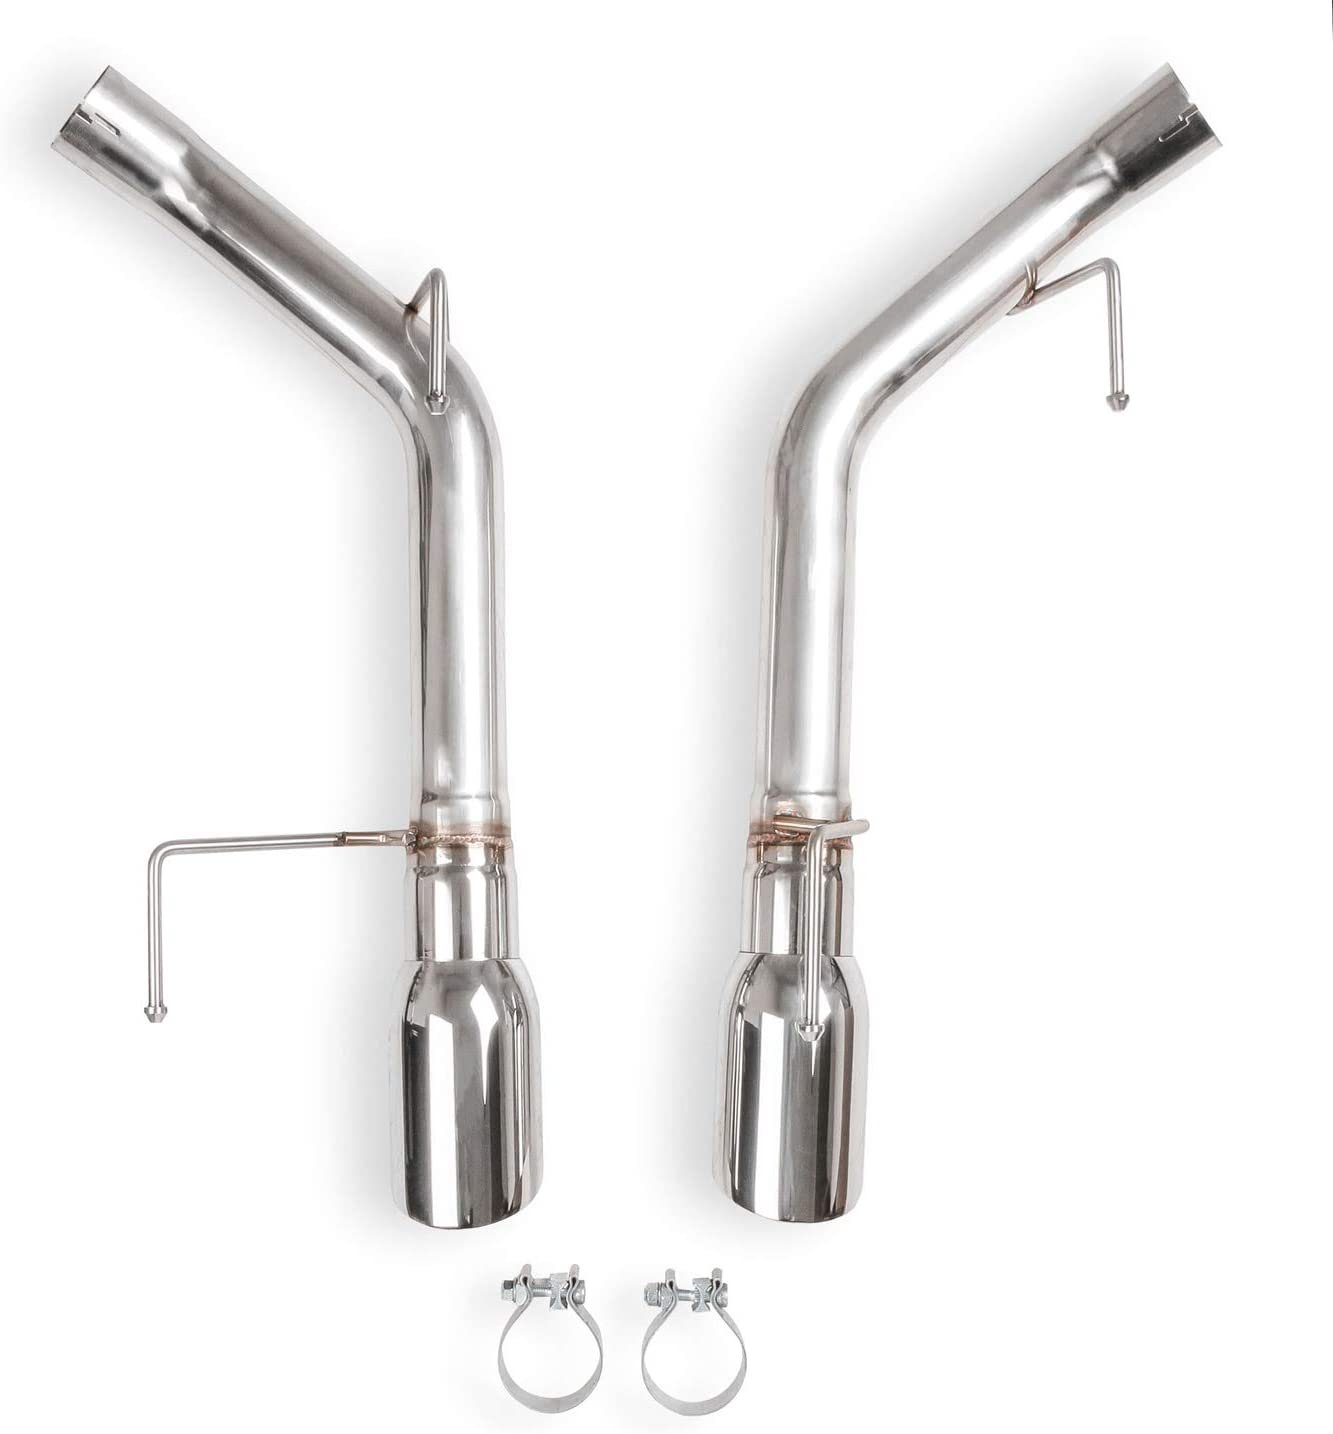 Flowtech 2005-10 Mustang Gt Non-Muffled Axle-Back 格安SALEスタート Exhaust 無料サンプルOK